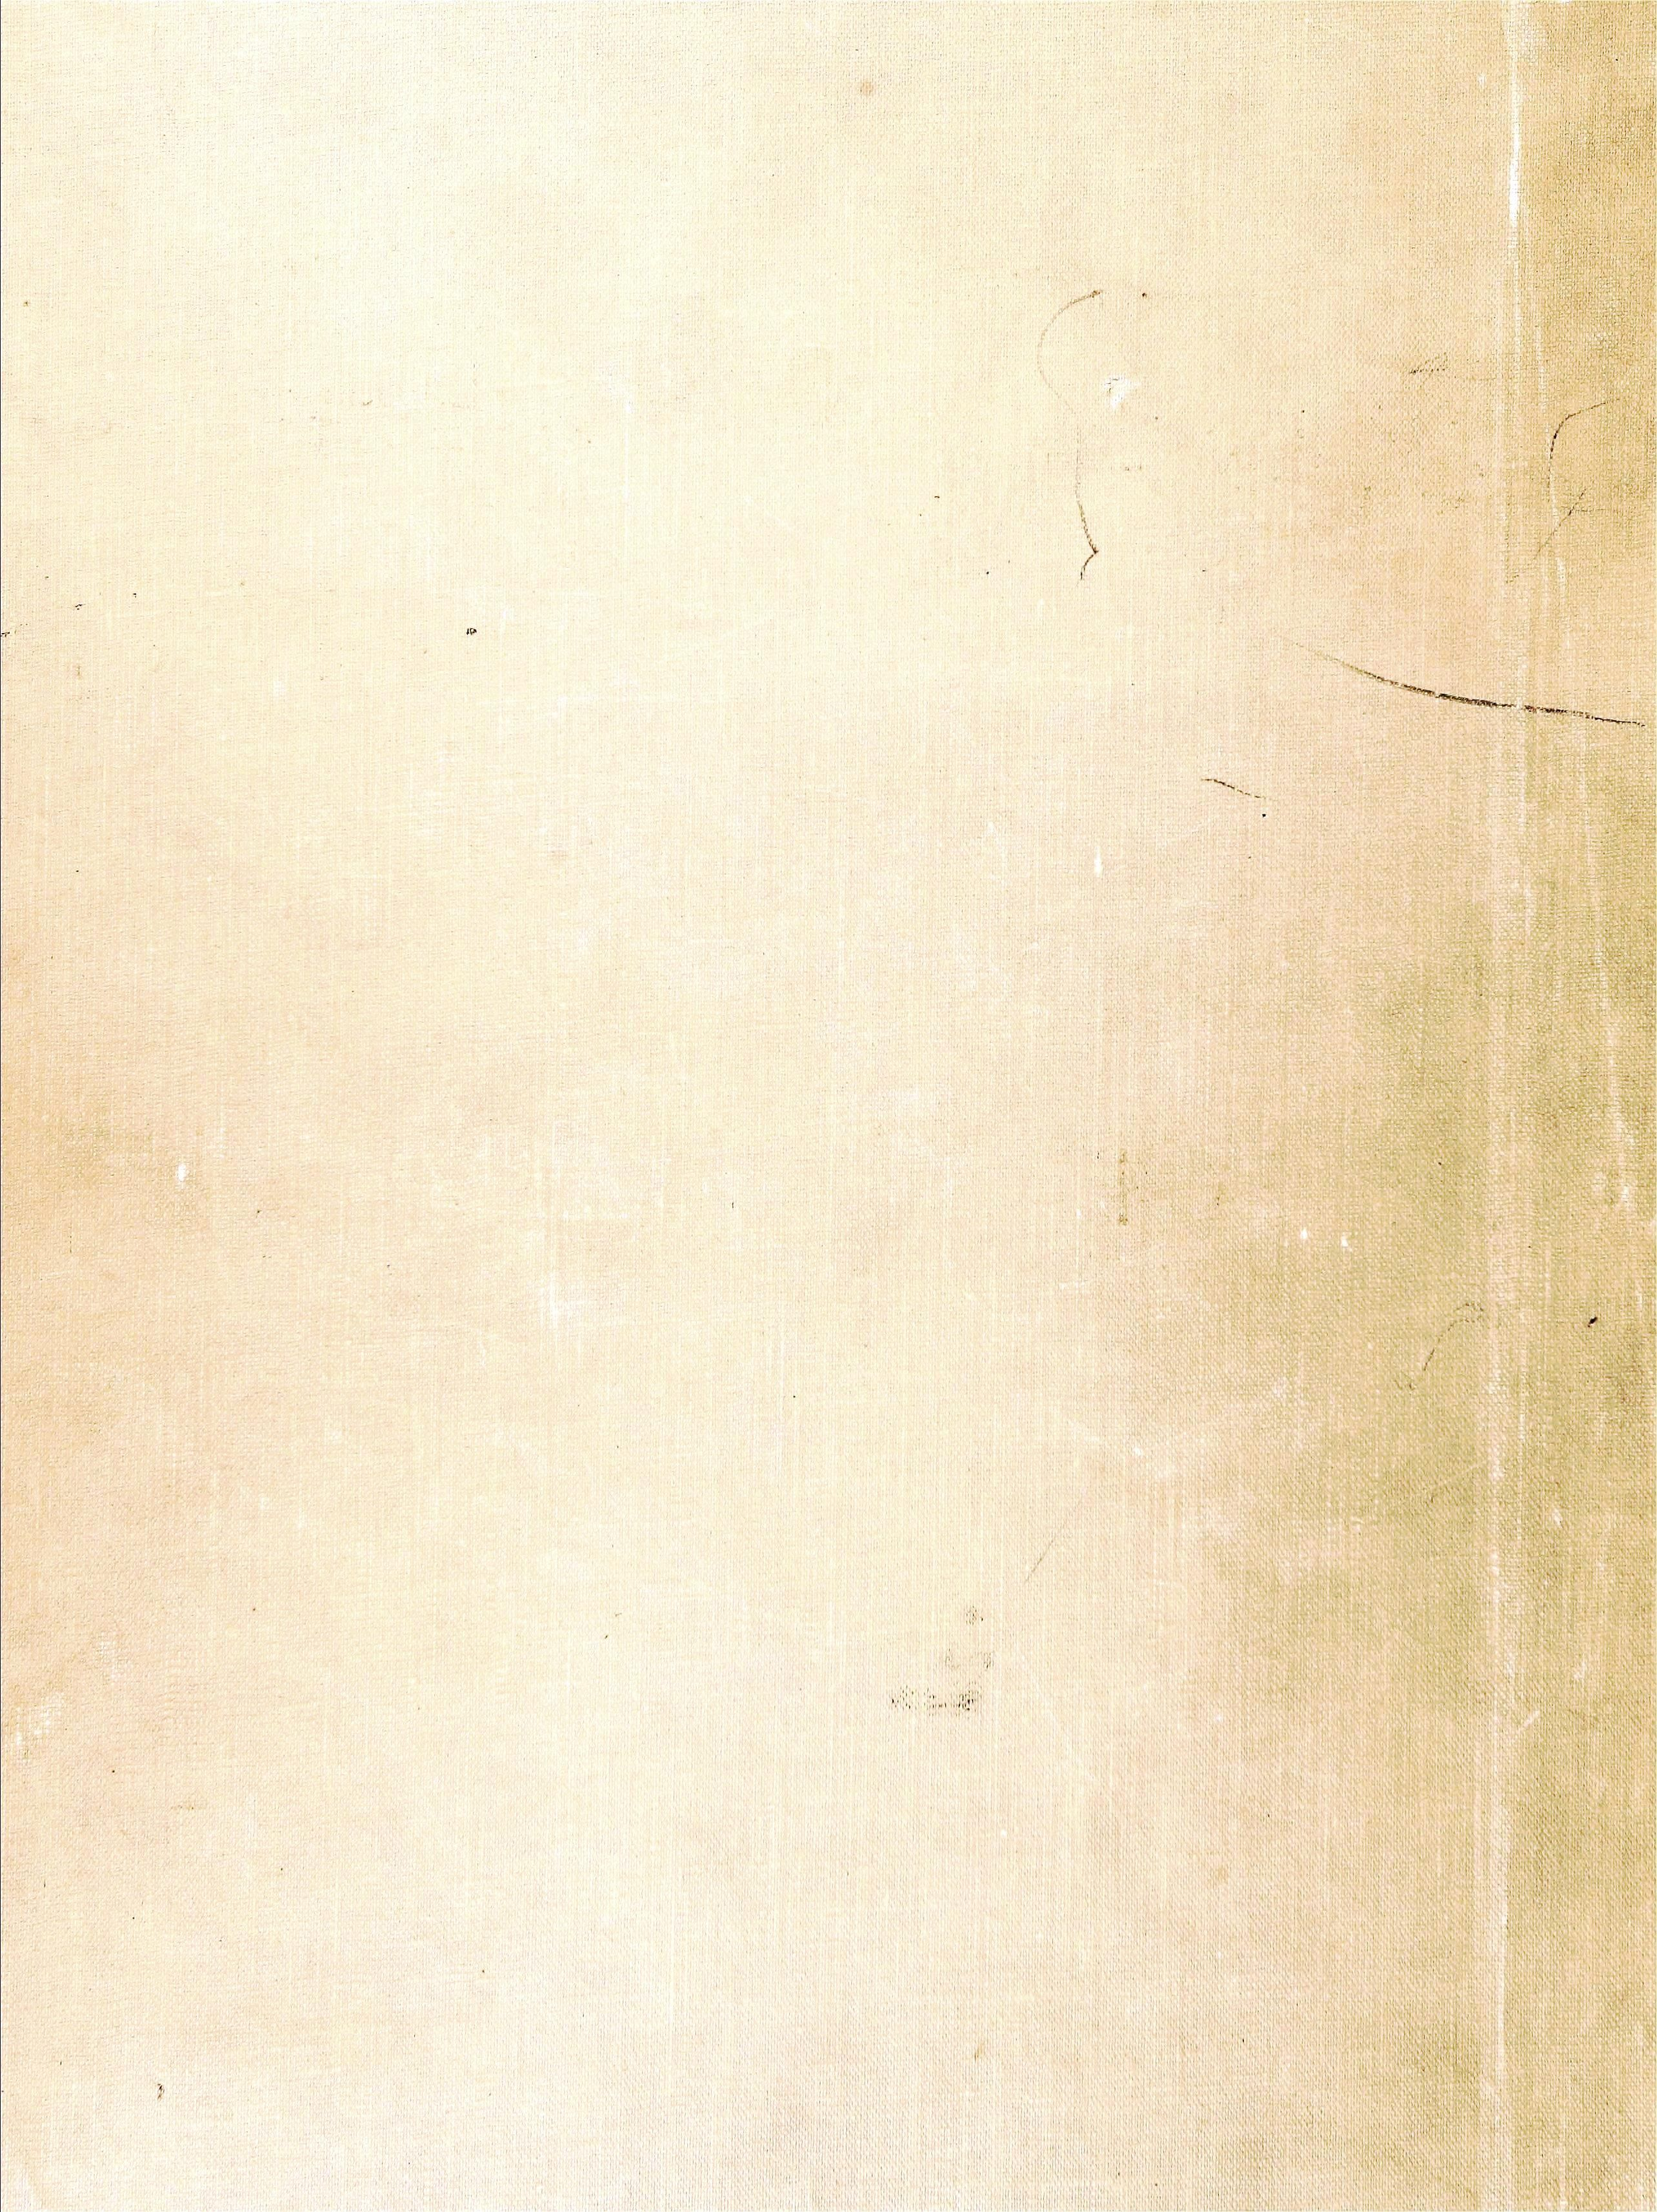 Bookbinders White Vintage Paper Textures Vintage Paper Background Texture Vintage Paper Background